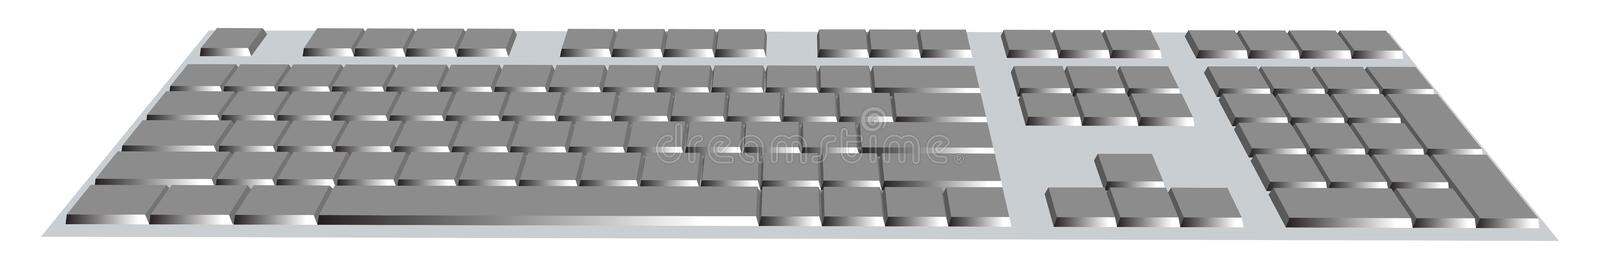 Computer keyboard with blank buttons, isolated on white,  isometric, in perspective. royalty free illustration